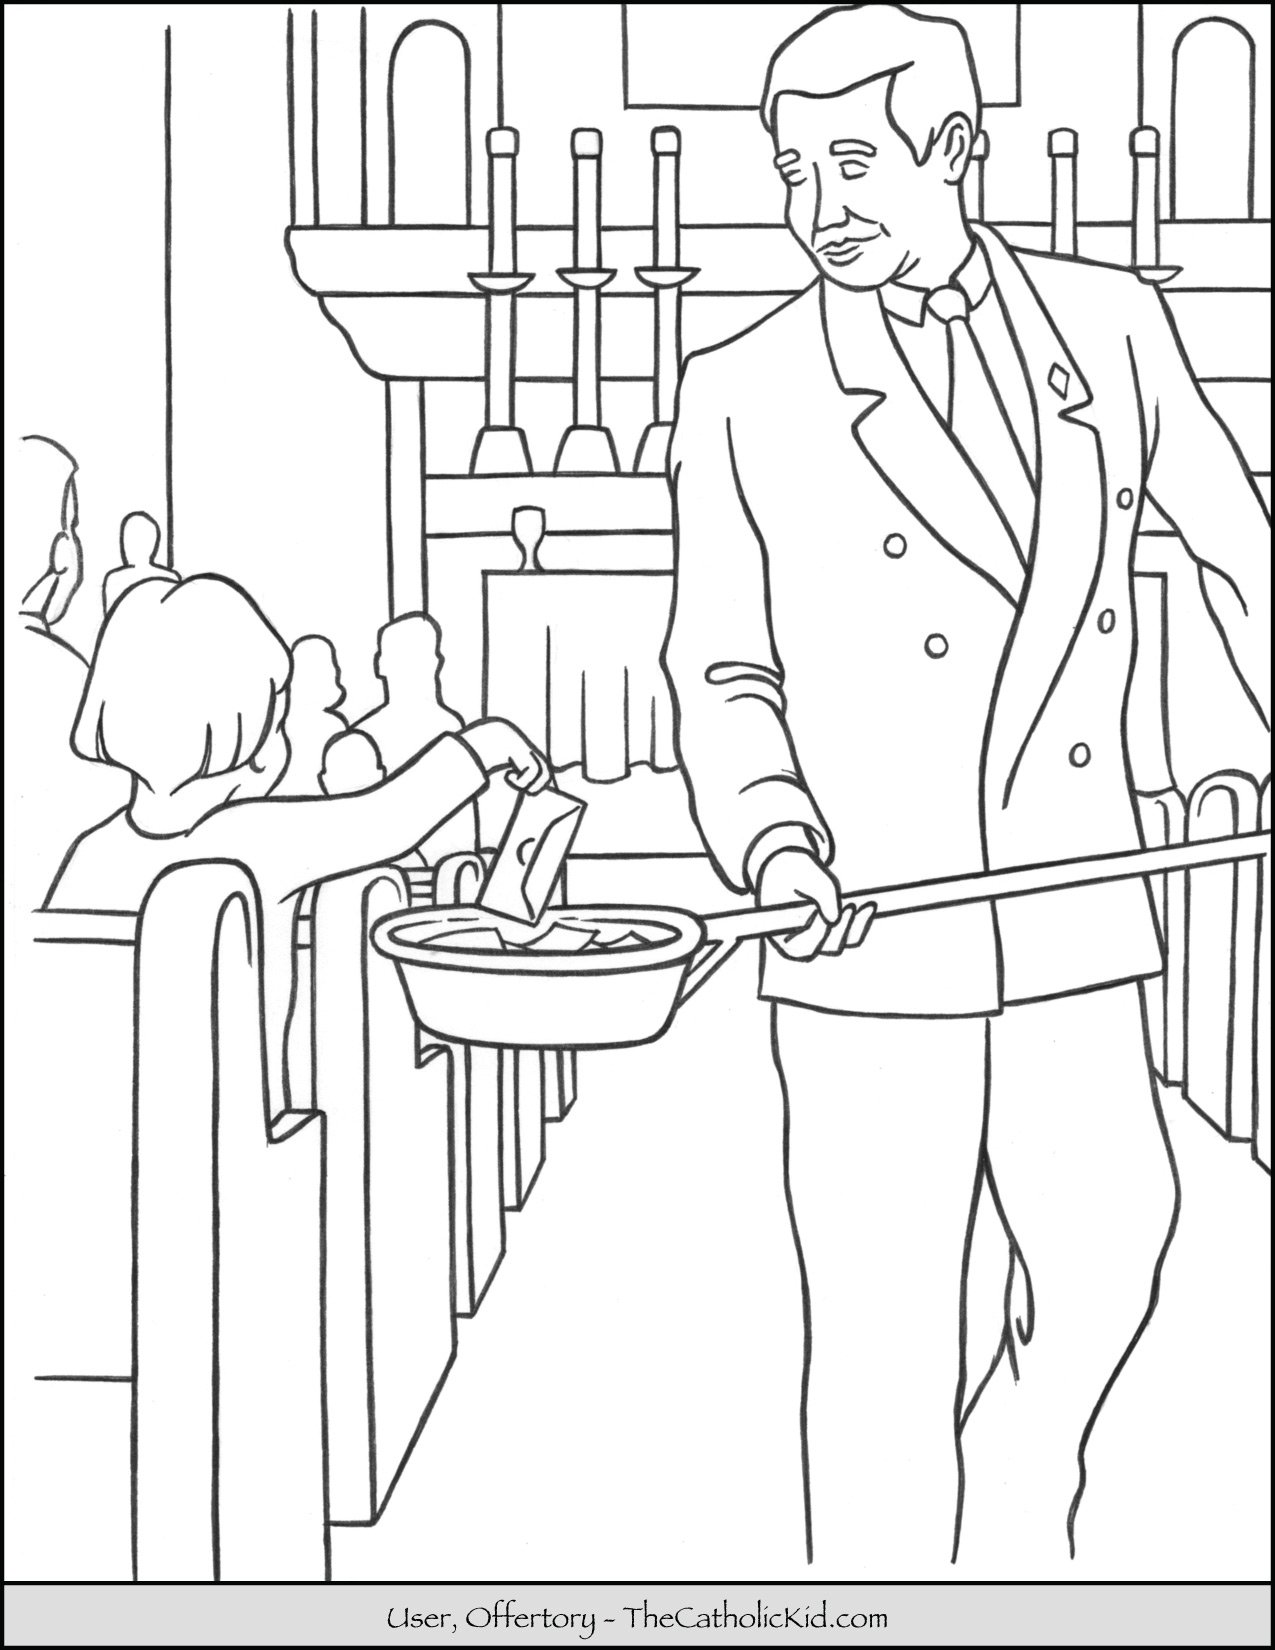 Usher Offertory Collection Coloring Page